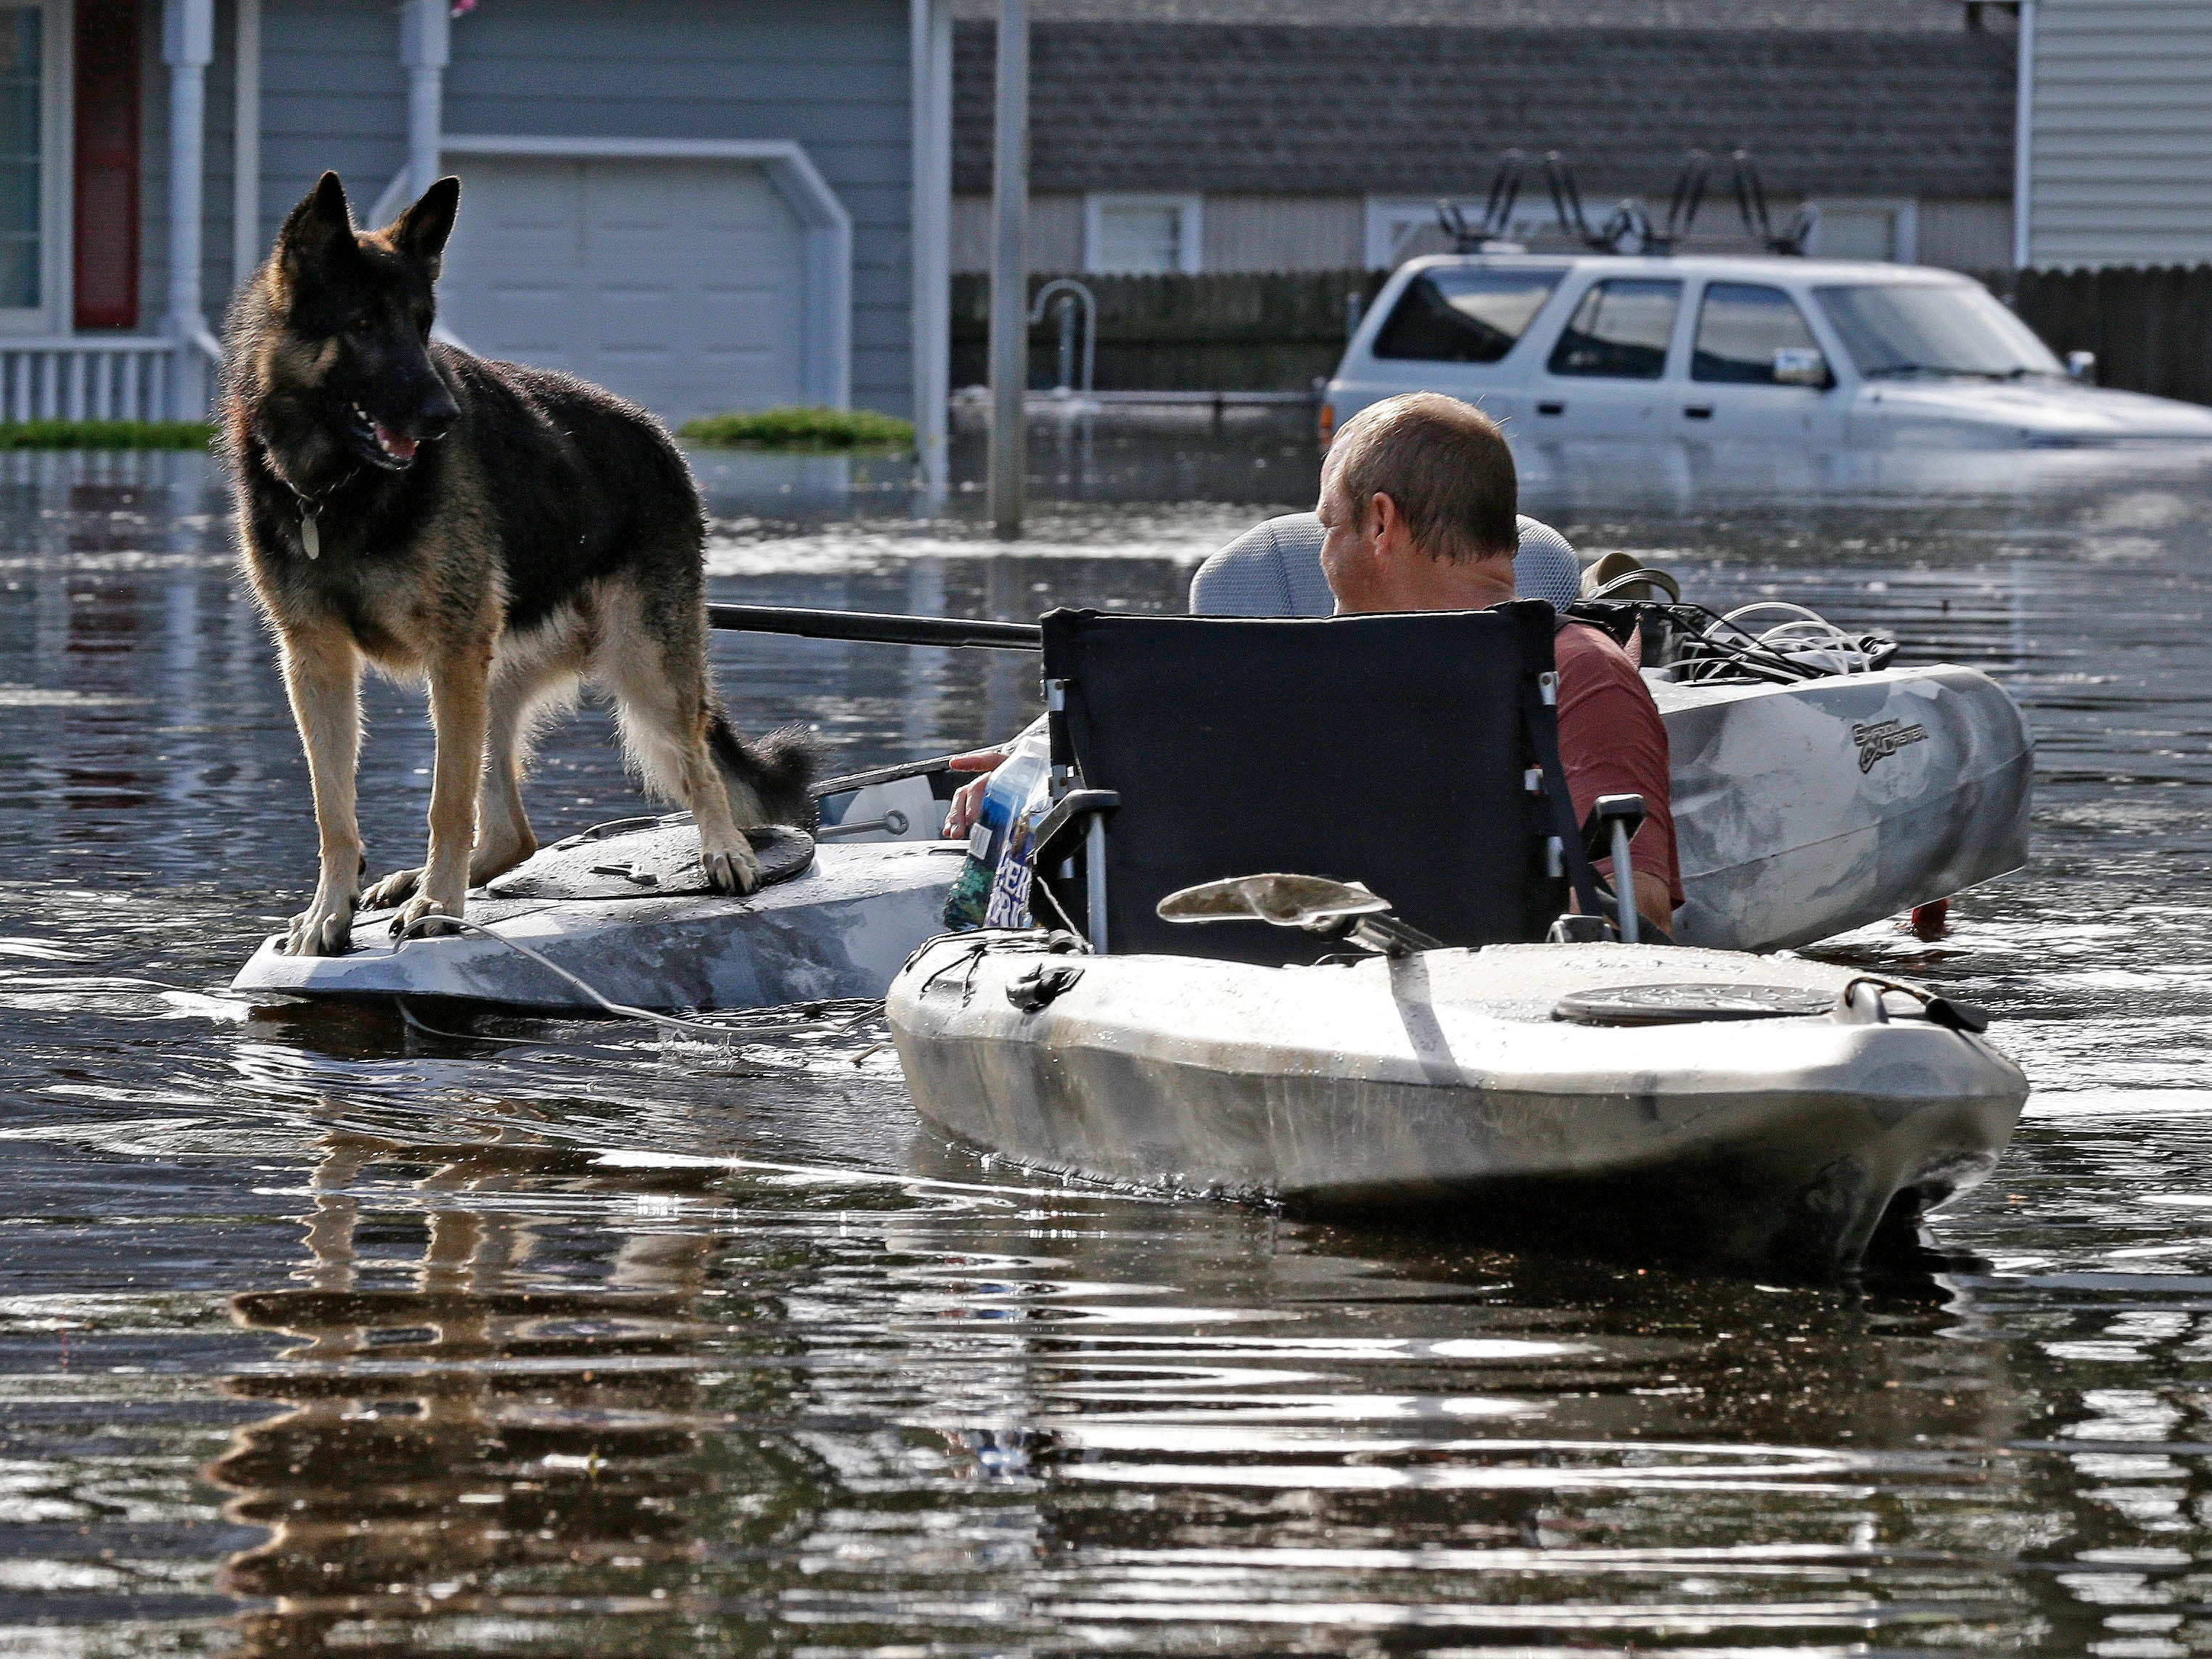 A man tries to get his dog out of a flooded neighborhood in Lumberton, N.C., Sept. 17, 2018, in the aftermath of Hurricane Florence.